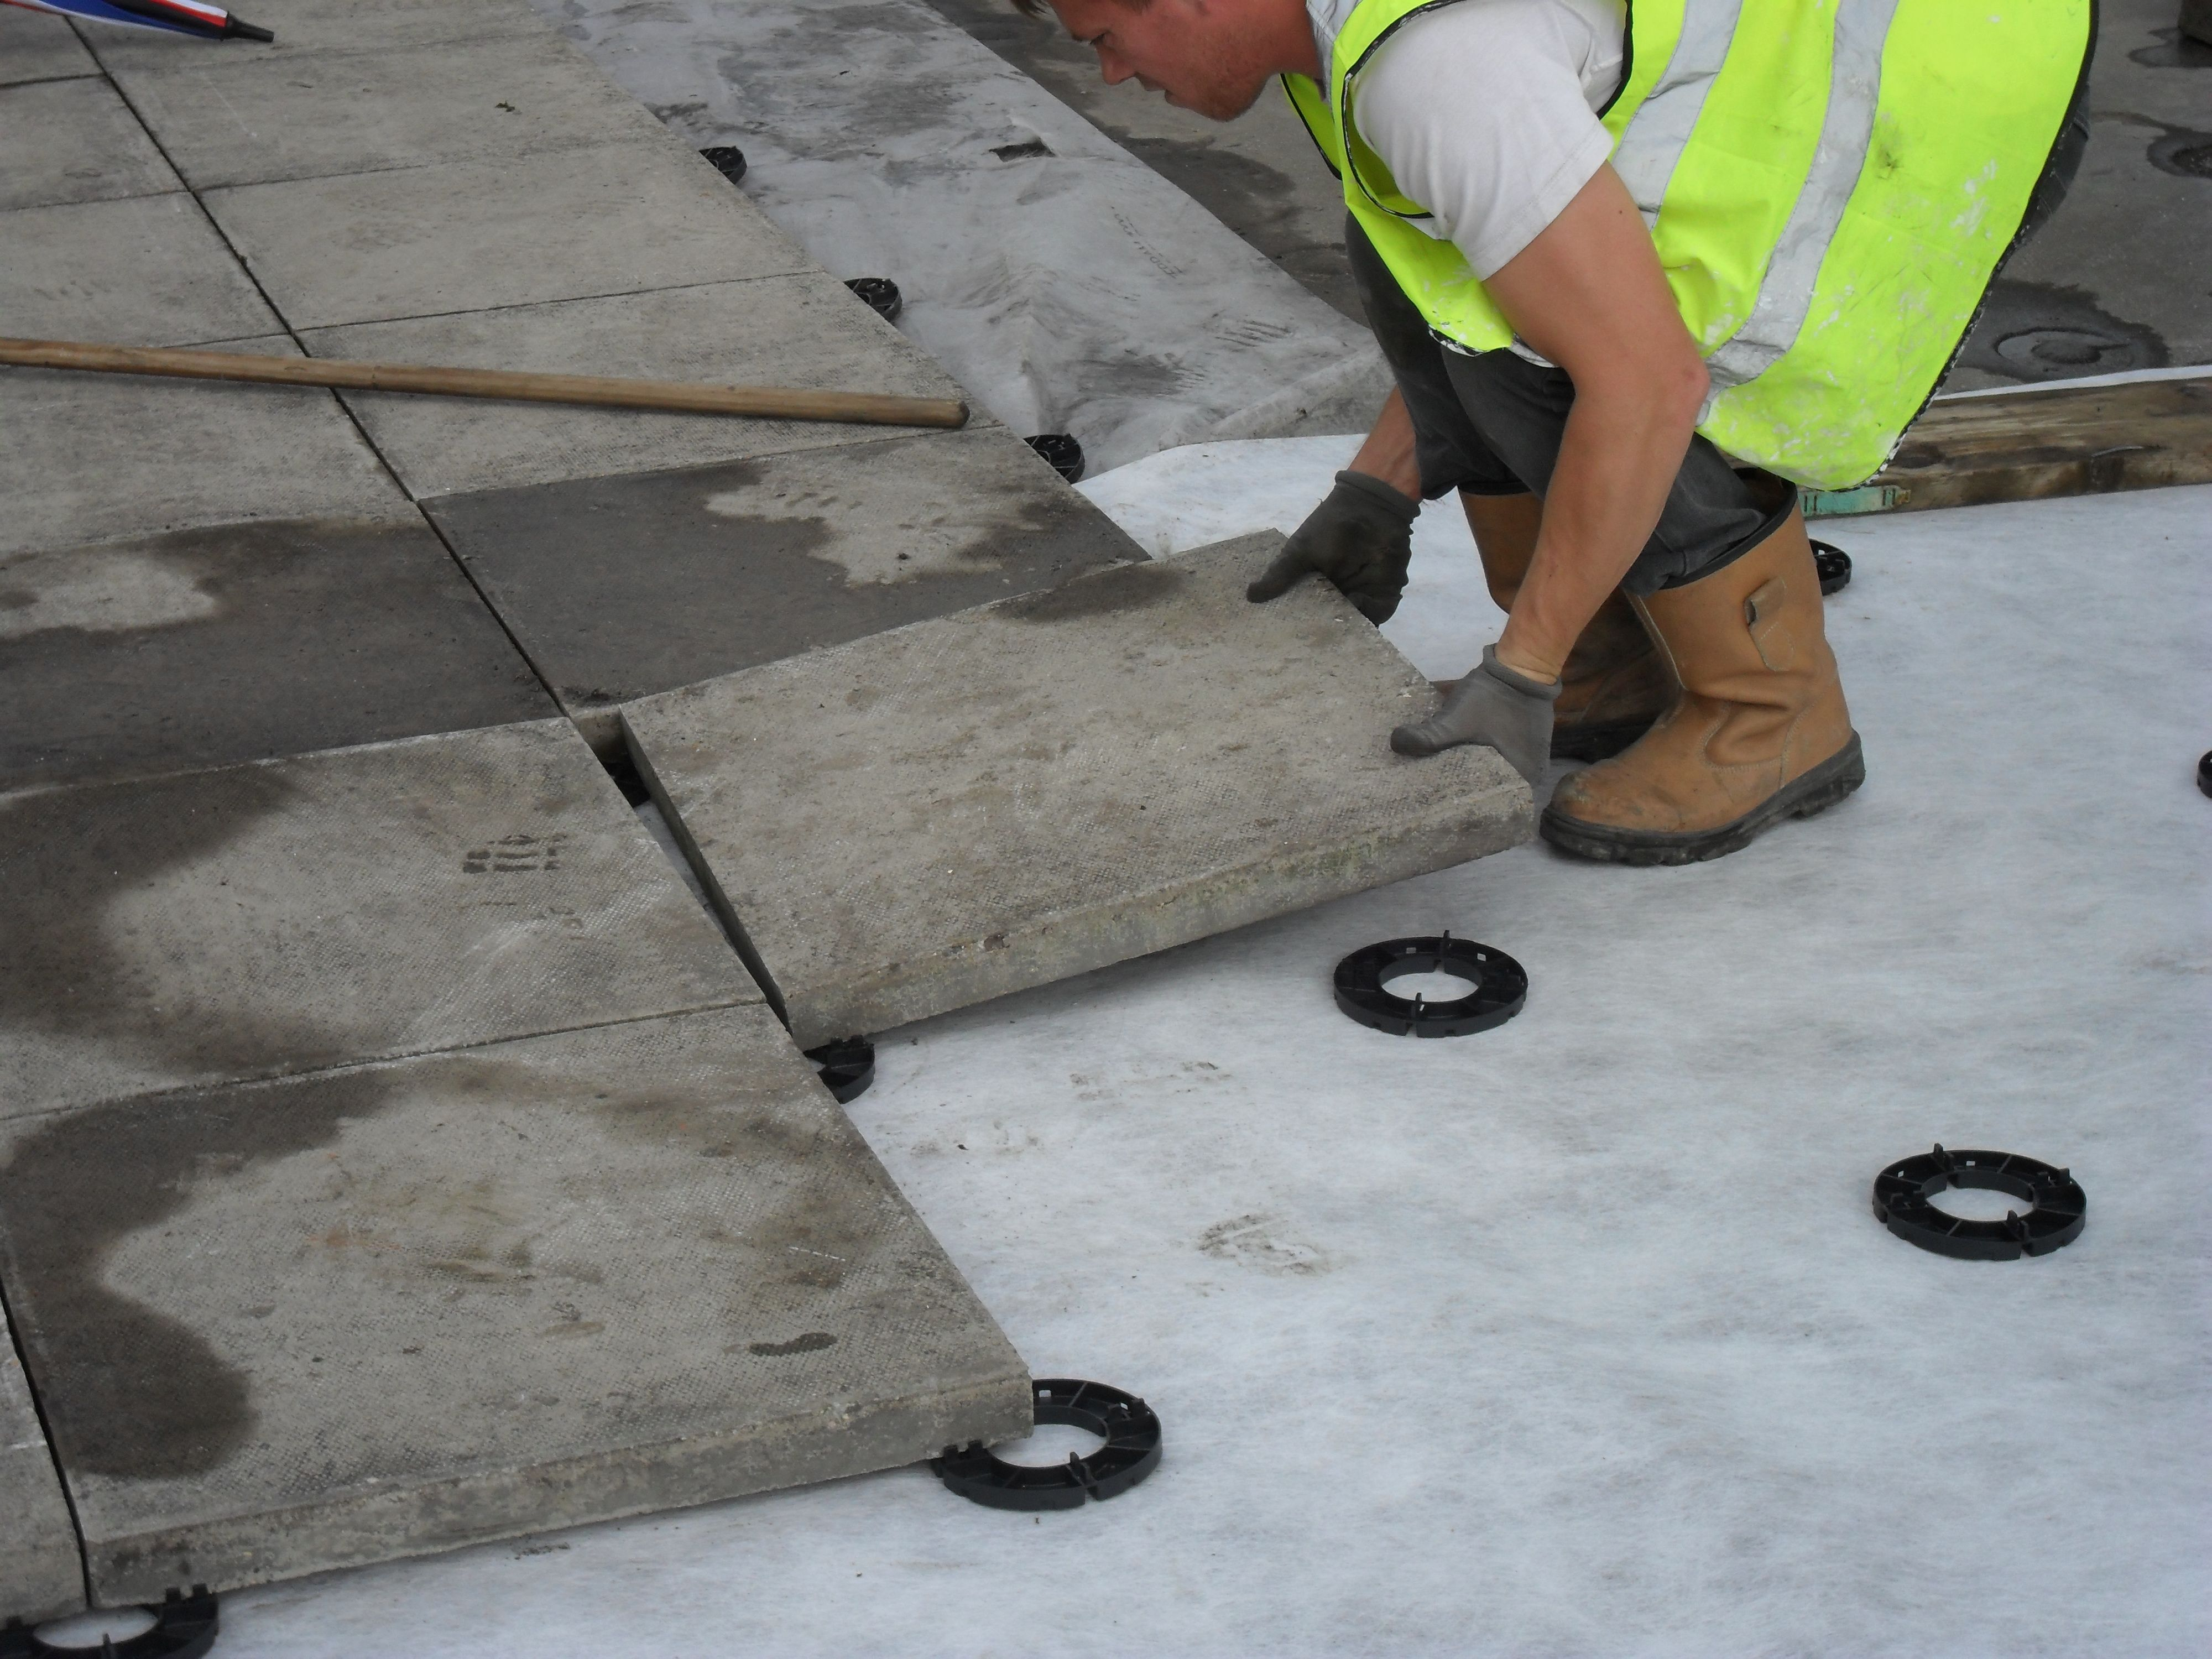 Pedestals Support Pads We Offer A Range Of Products To Assist Easy Installation And Levelling On All Roofs And Terraces Our Produ Pedestal Supportive Roof